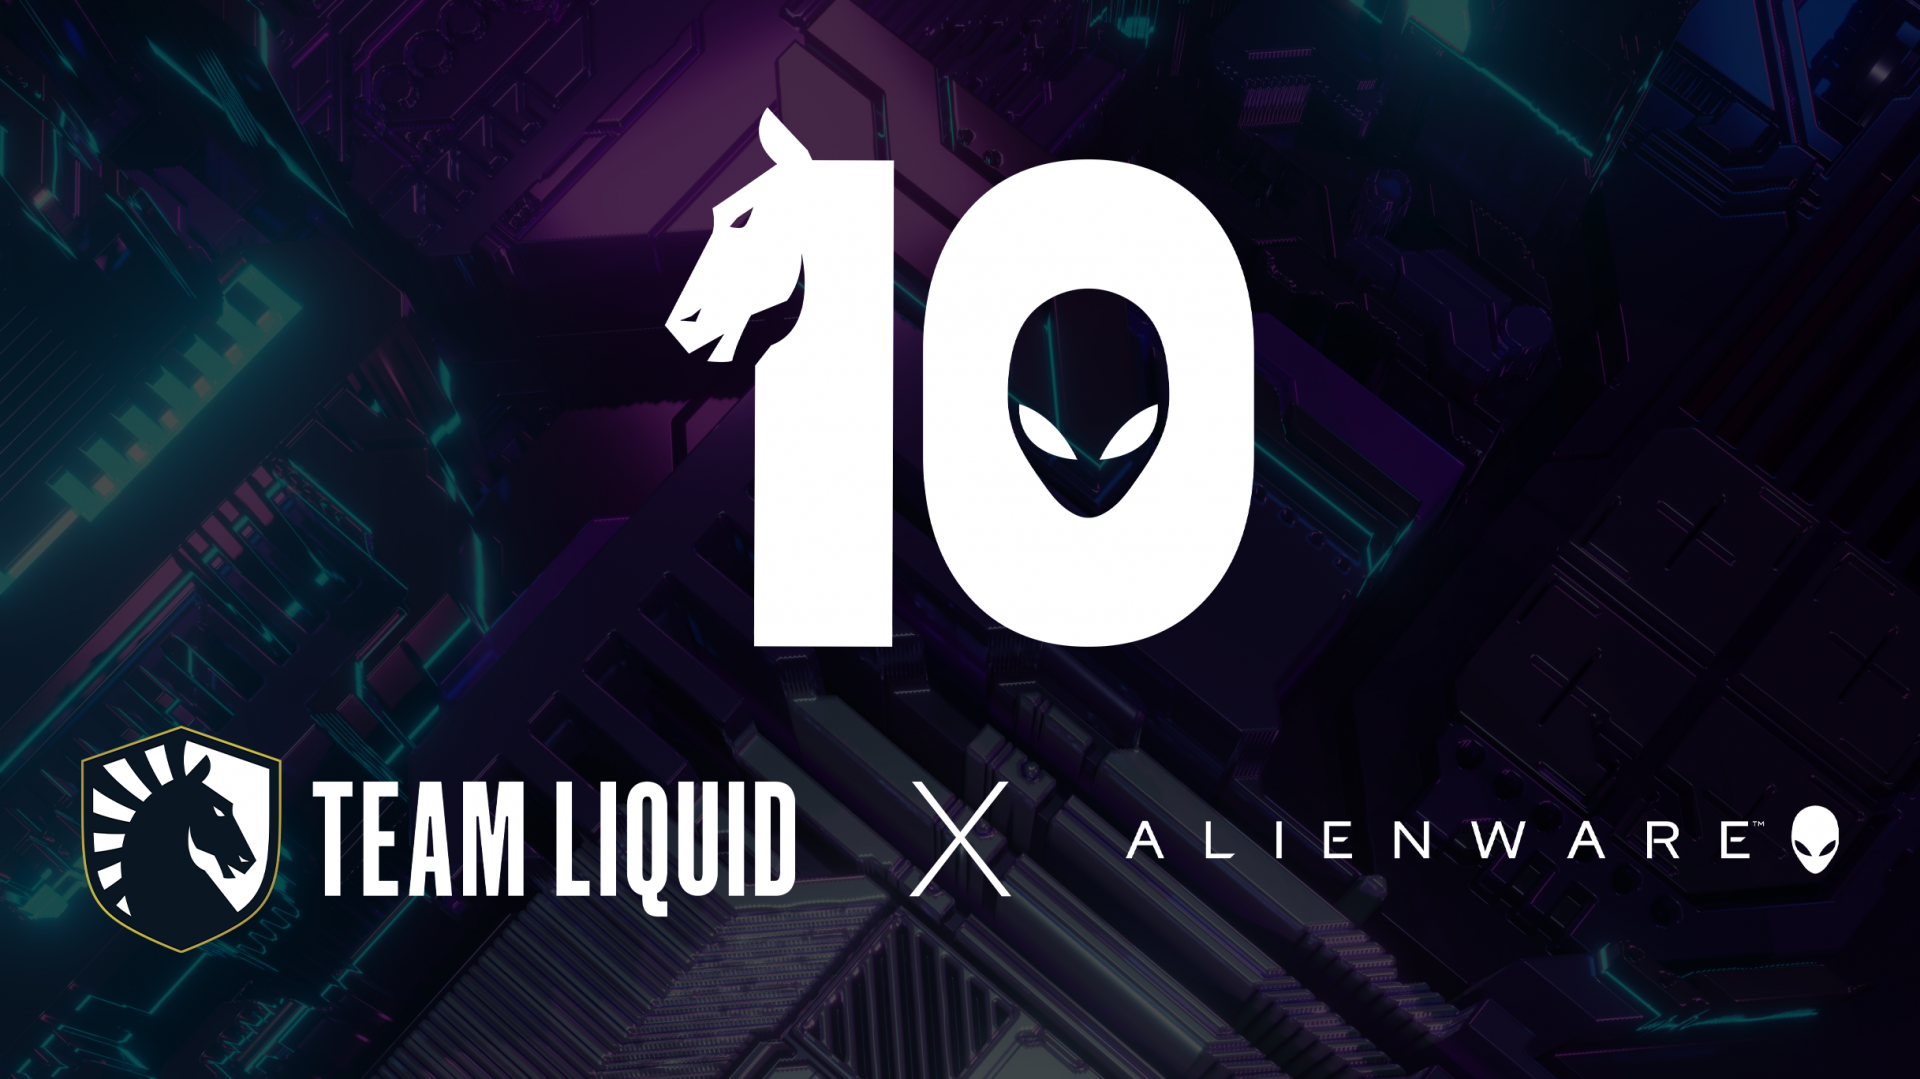 Team Liquid Alienware 10 años de asociación Liquid +